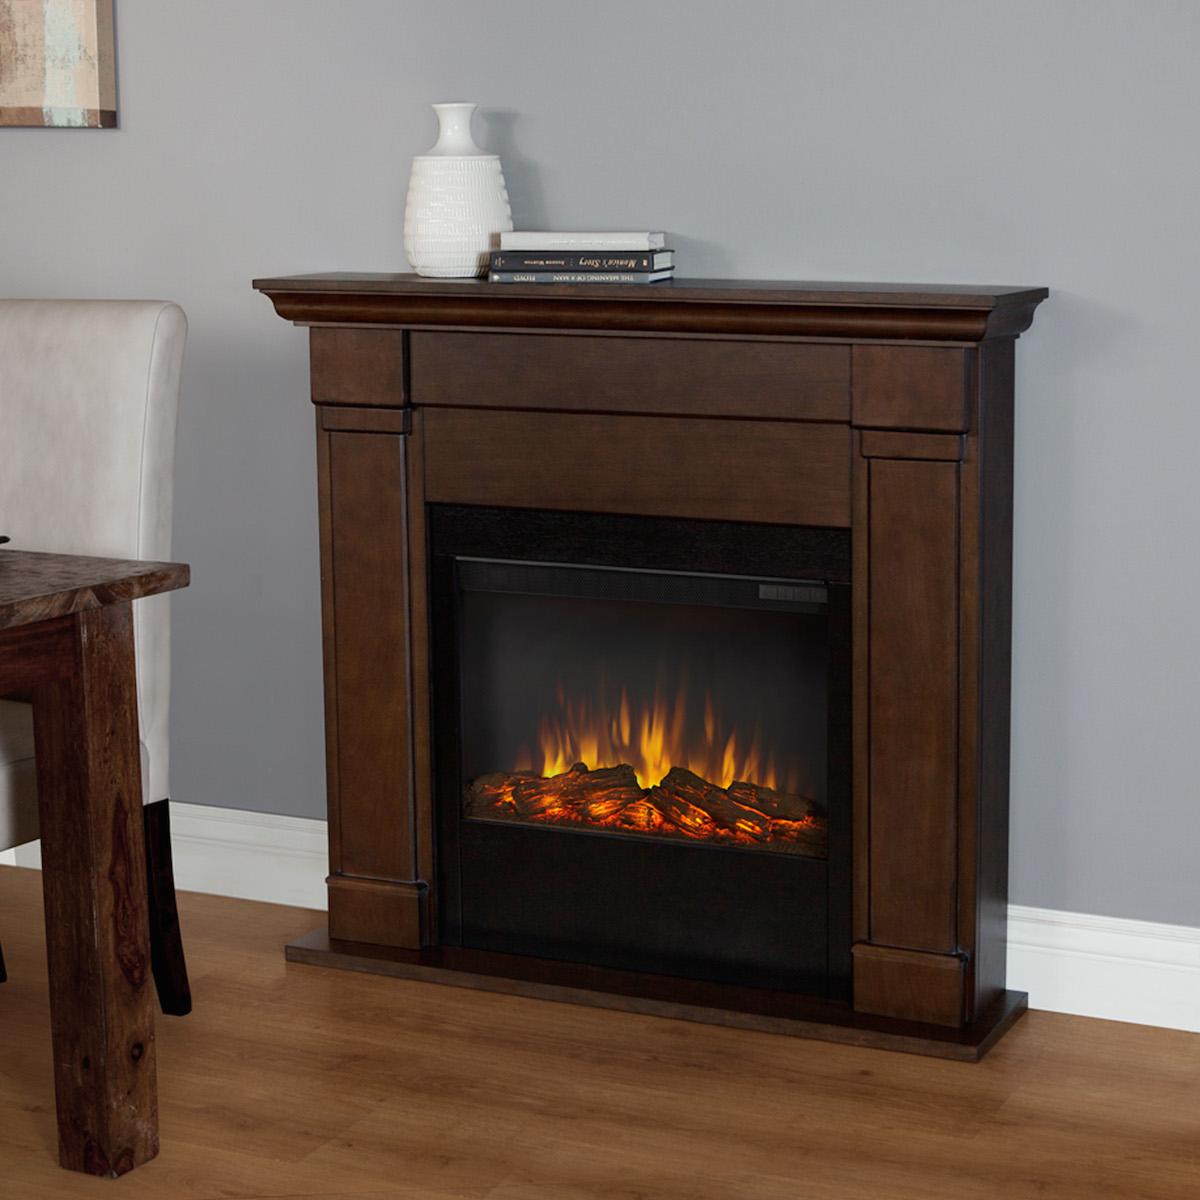 vintage electric flameless fireplace jpg 1200x900